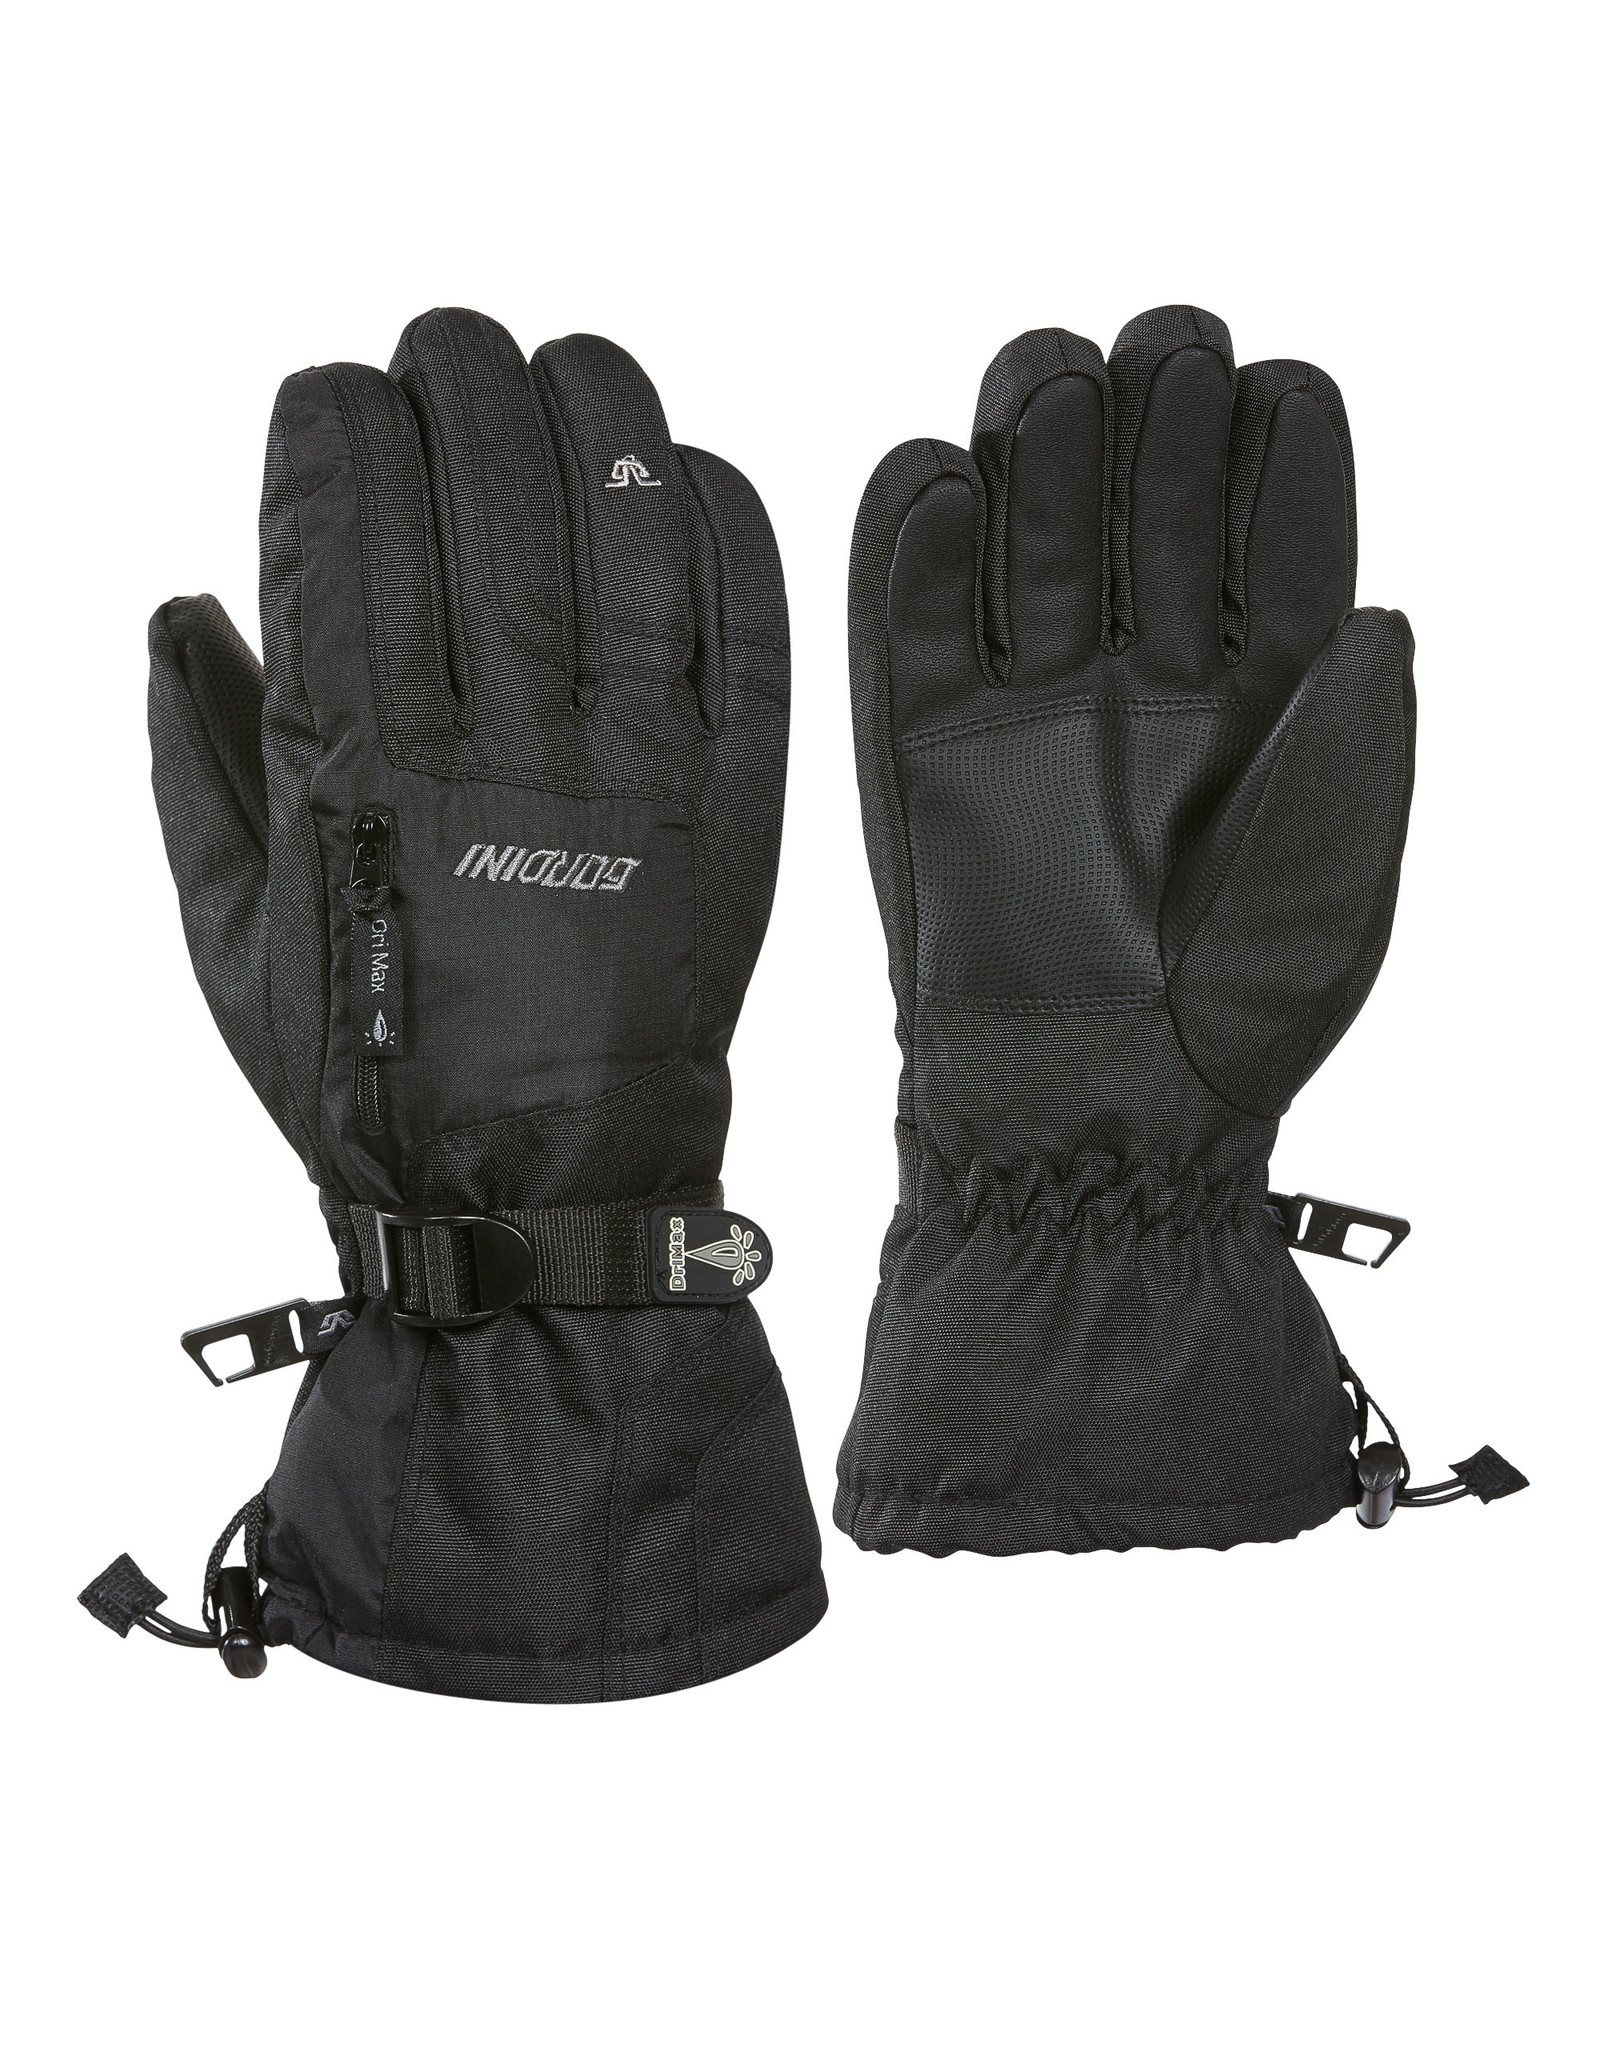 GORDINI GORDINI ULTRA DRI-MAX GAUNTLET IV MENS GLOVE BLACK 20